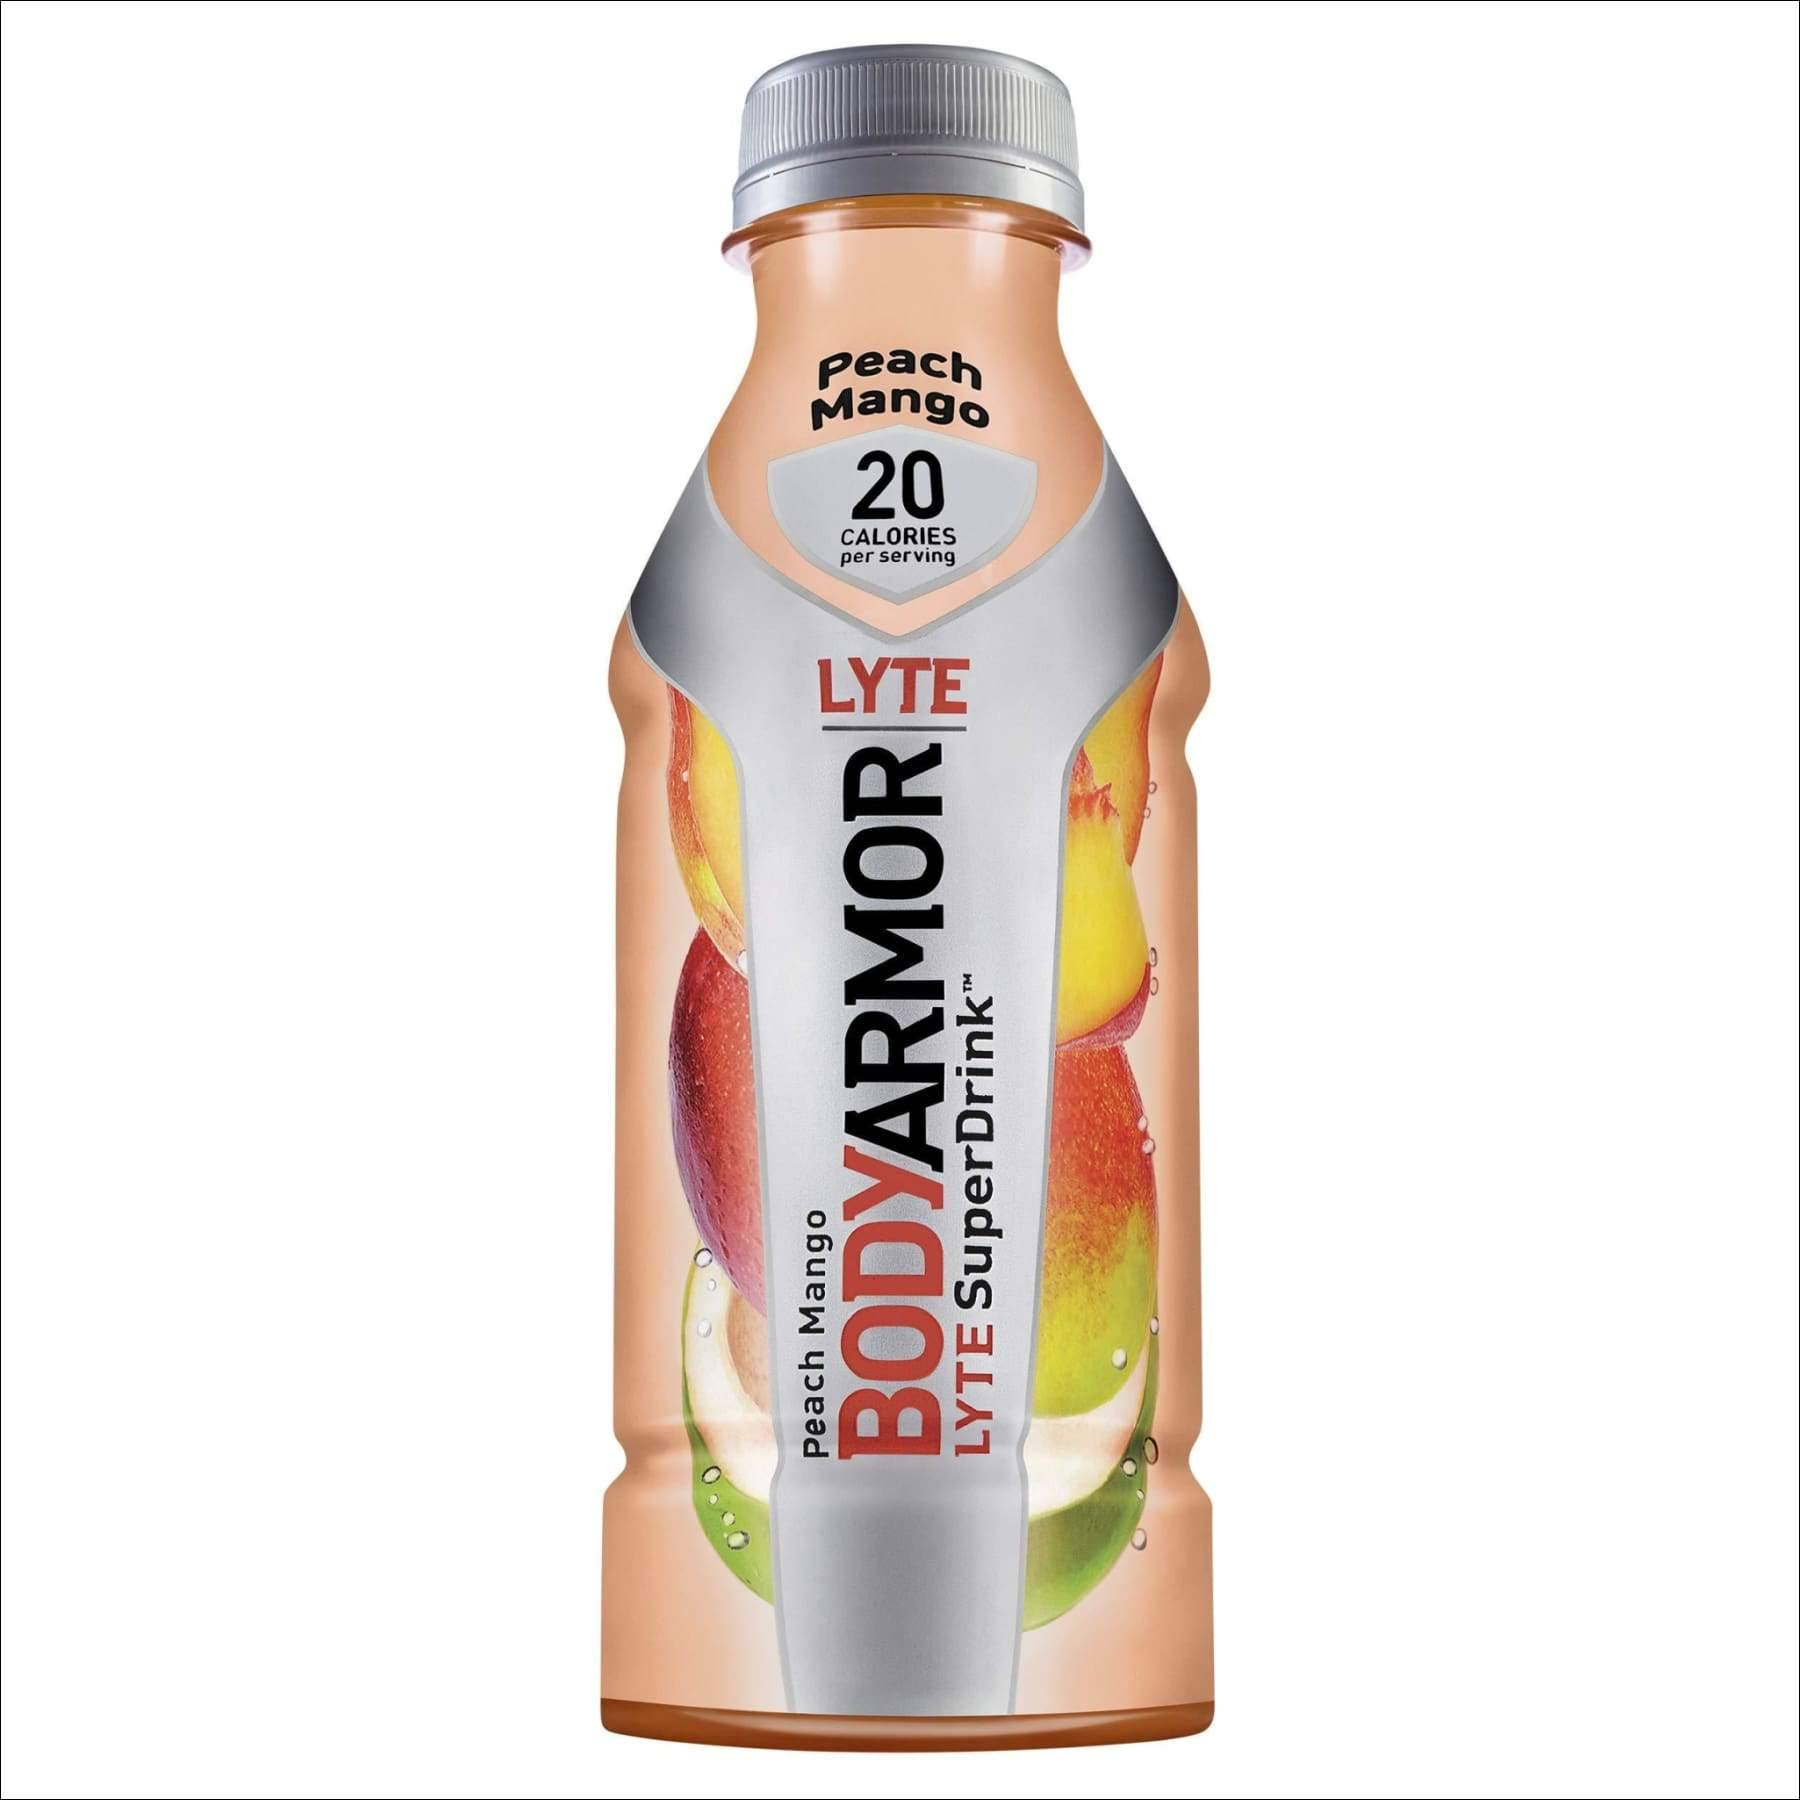 Bodyarmor Lyte SuperDrink - Peach Mango, 16oz